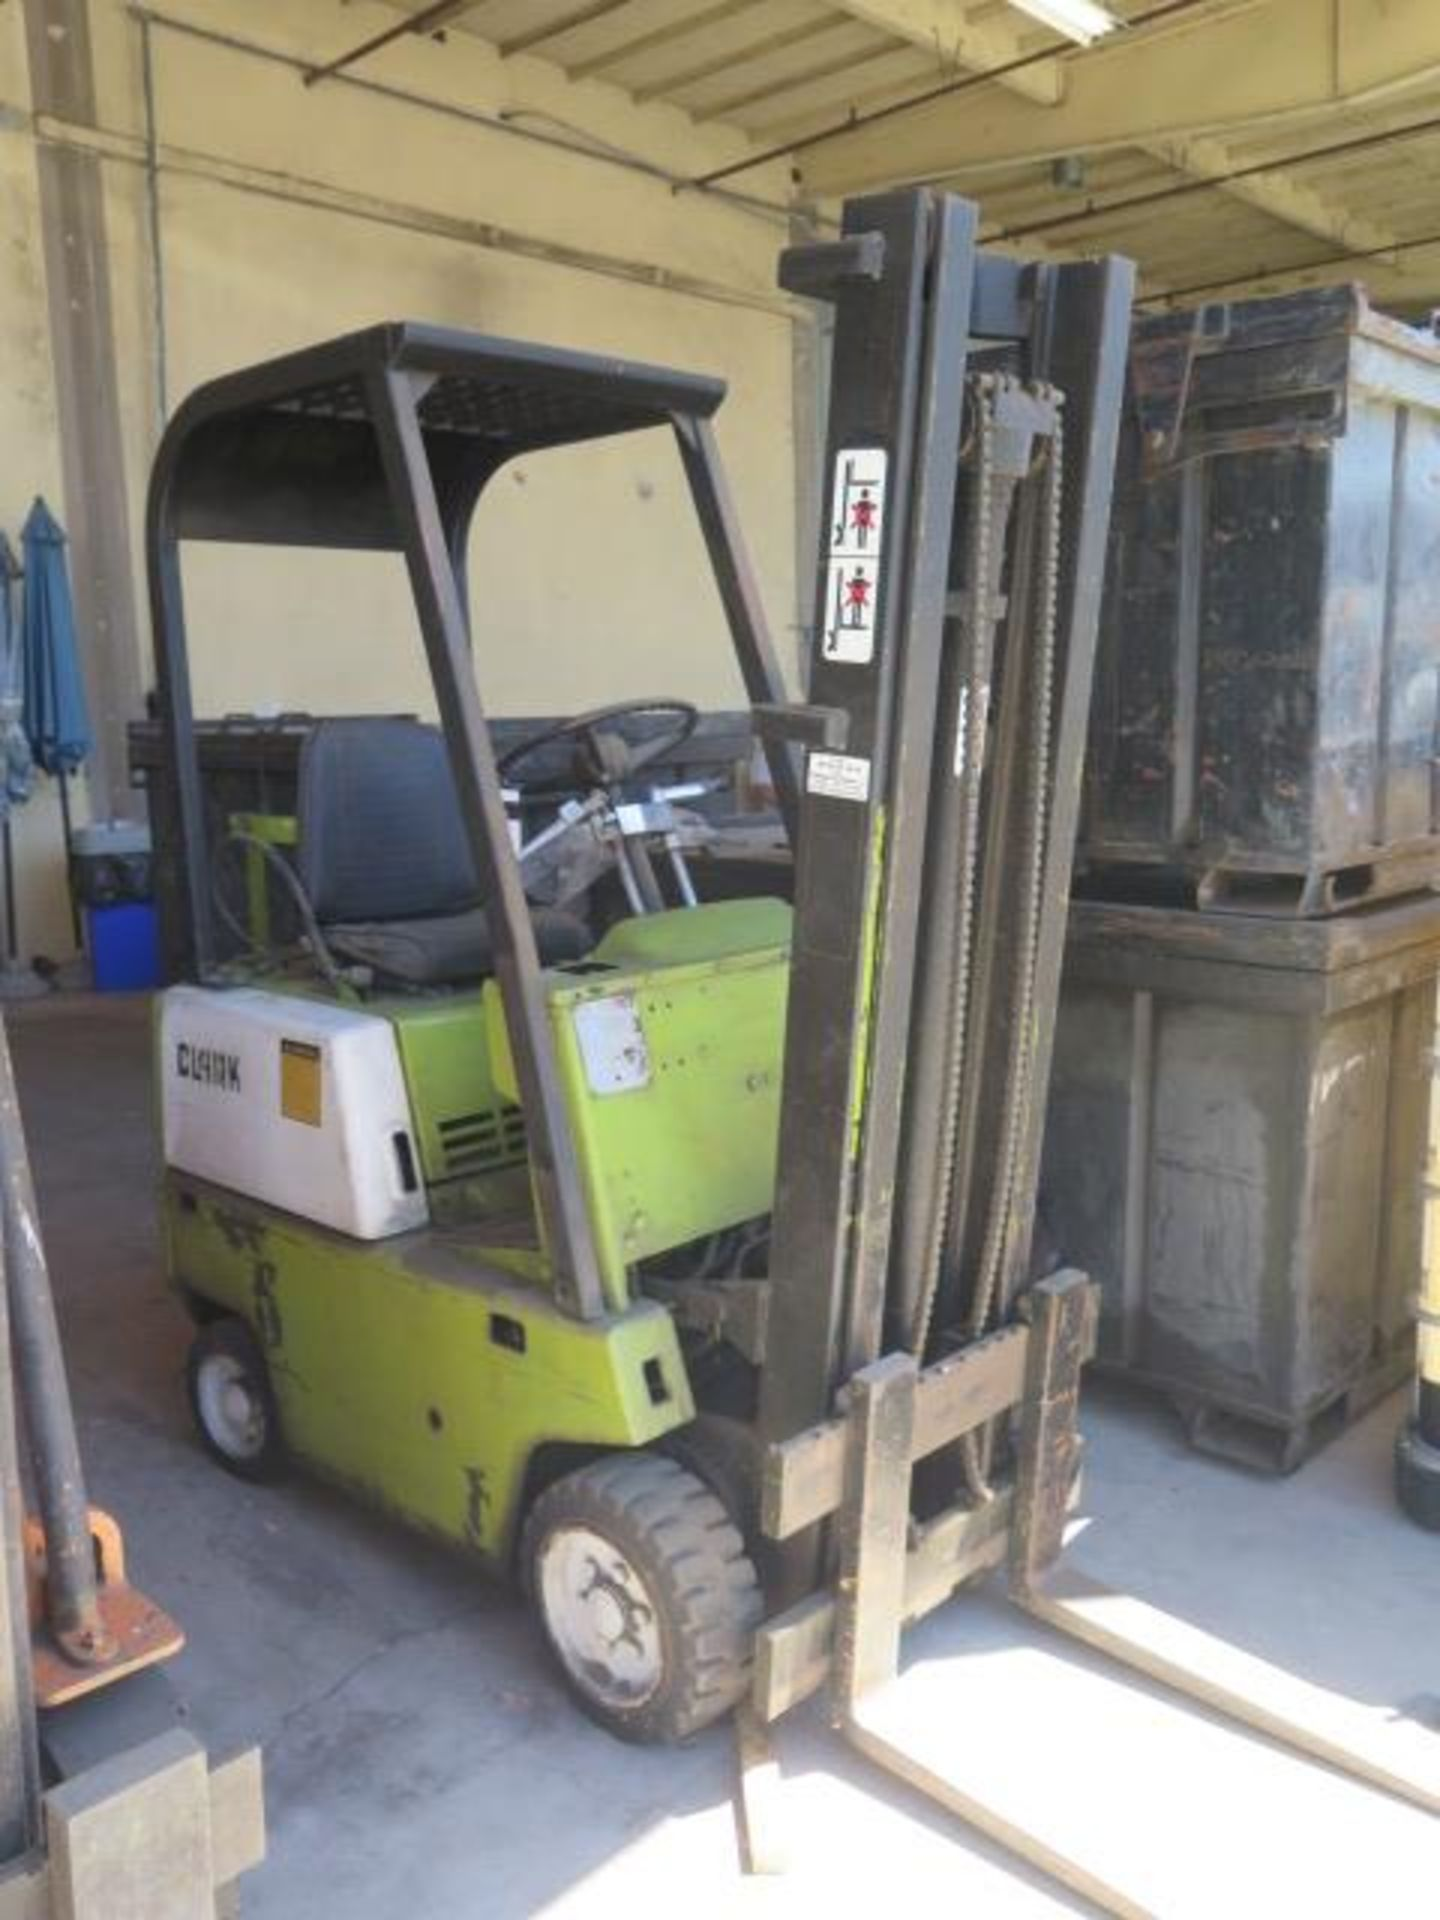 """Clark 2000 Lb Cap LPG Forklift w/ 2-Stage 130"""" Lift Height, (Condition Unknown), SOLD AS IS"""